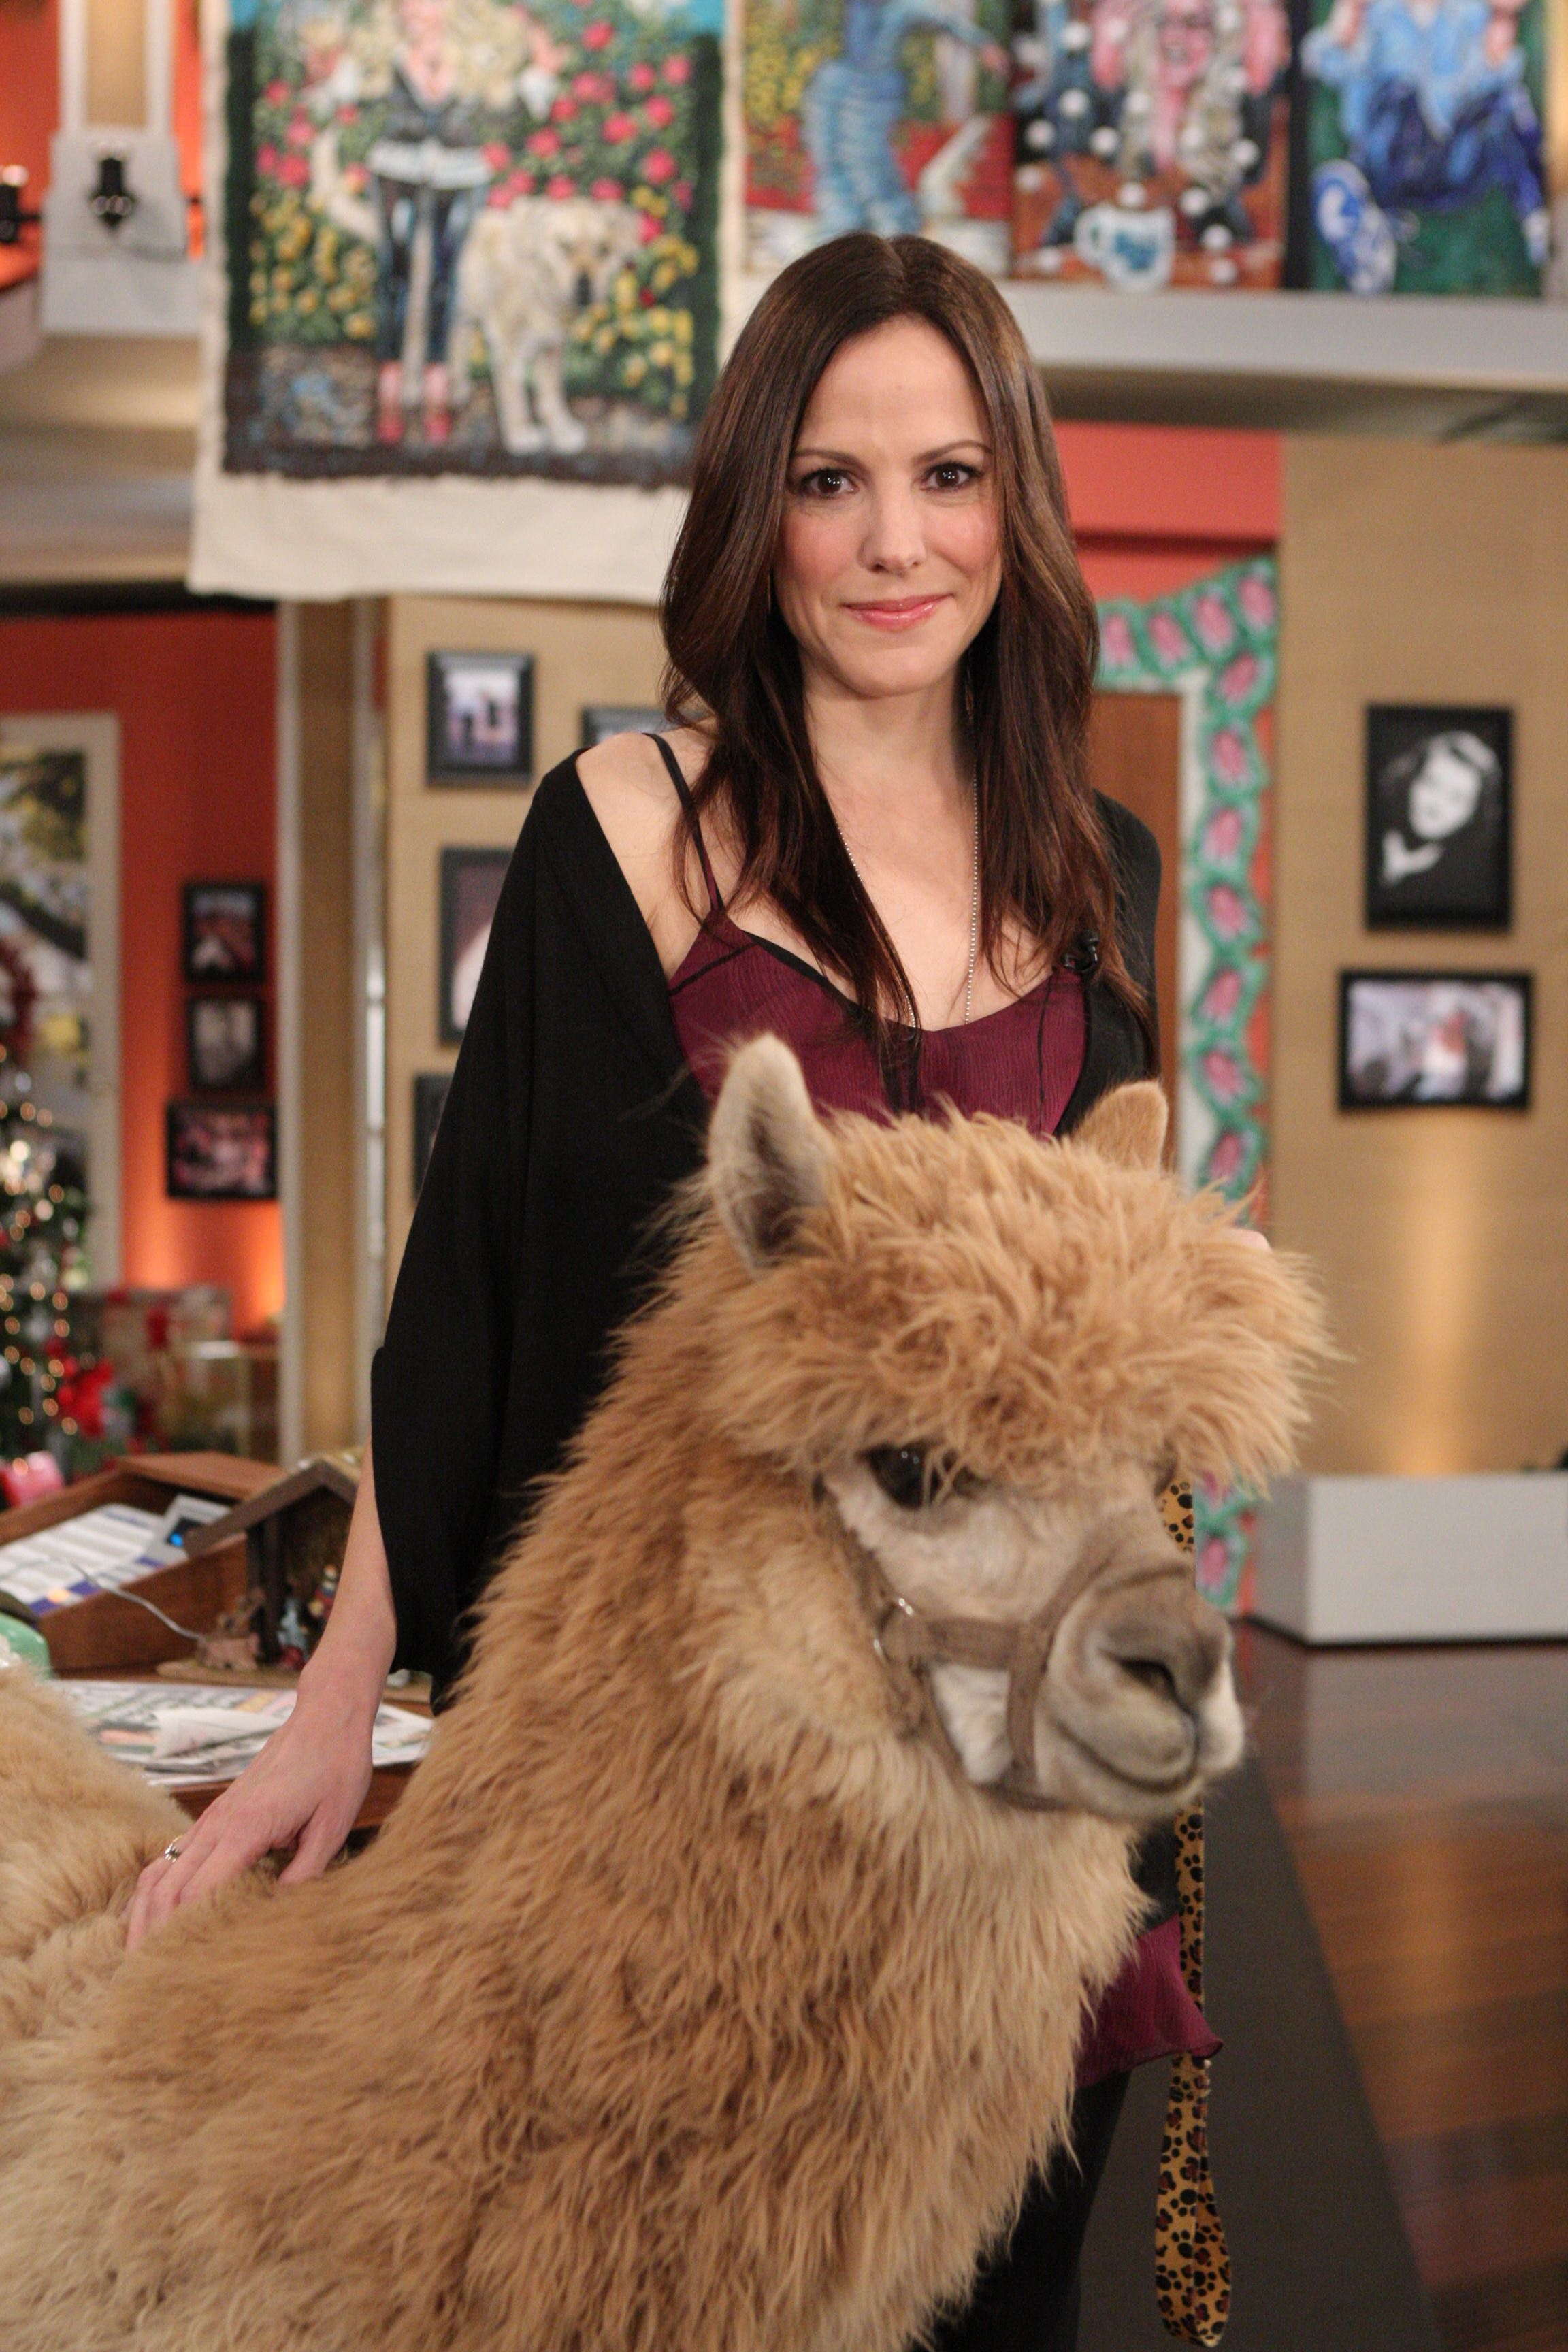 Mary-Louise Parker with alpaca, Bonnie Hunt Show photo #3.jpg